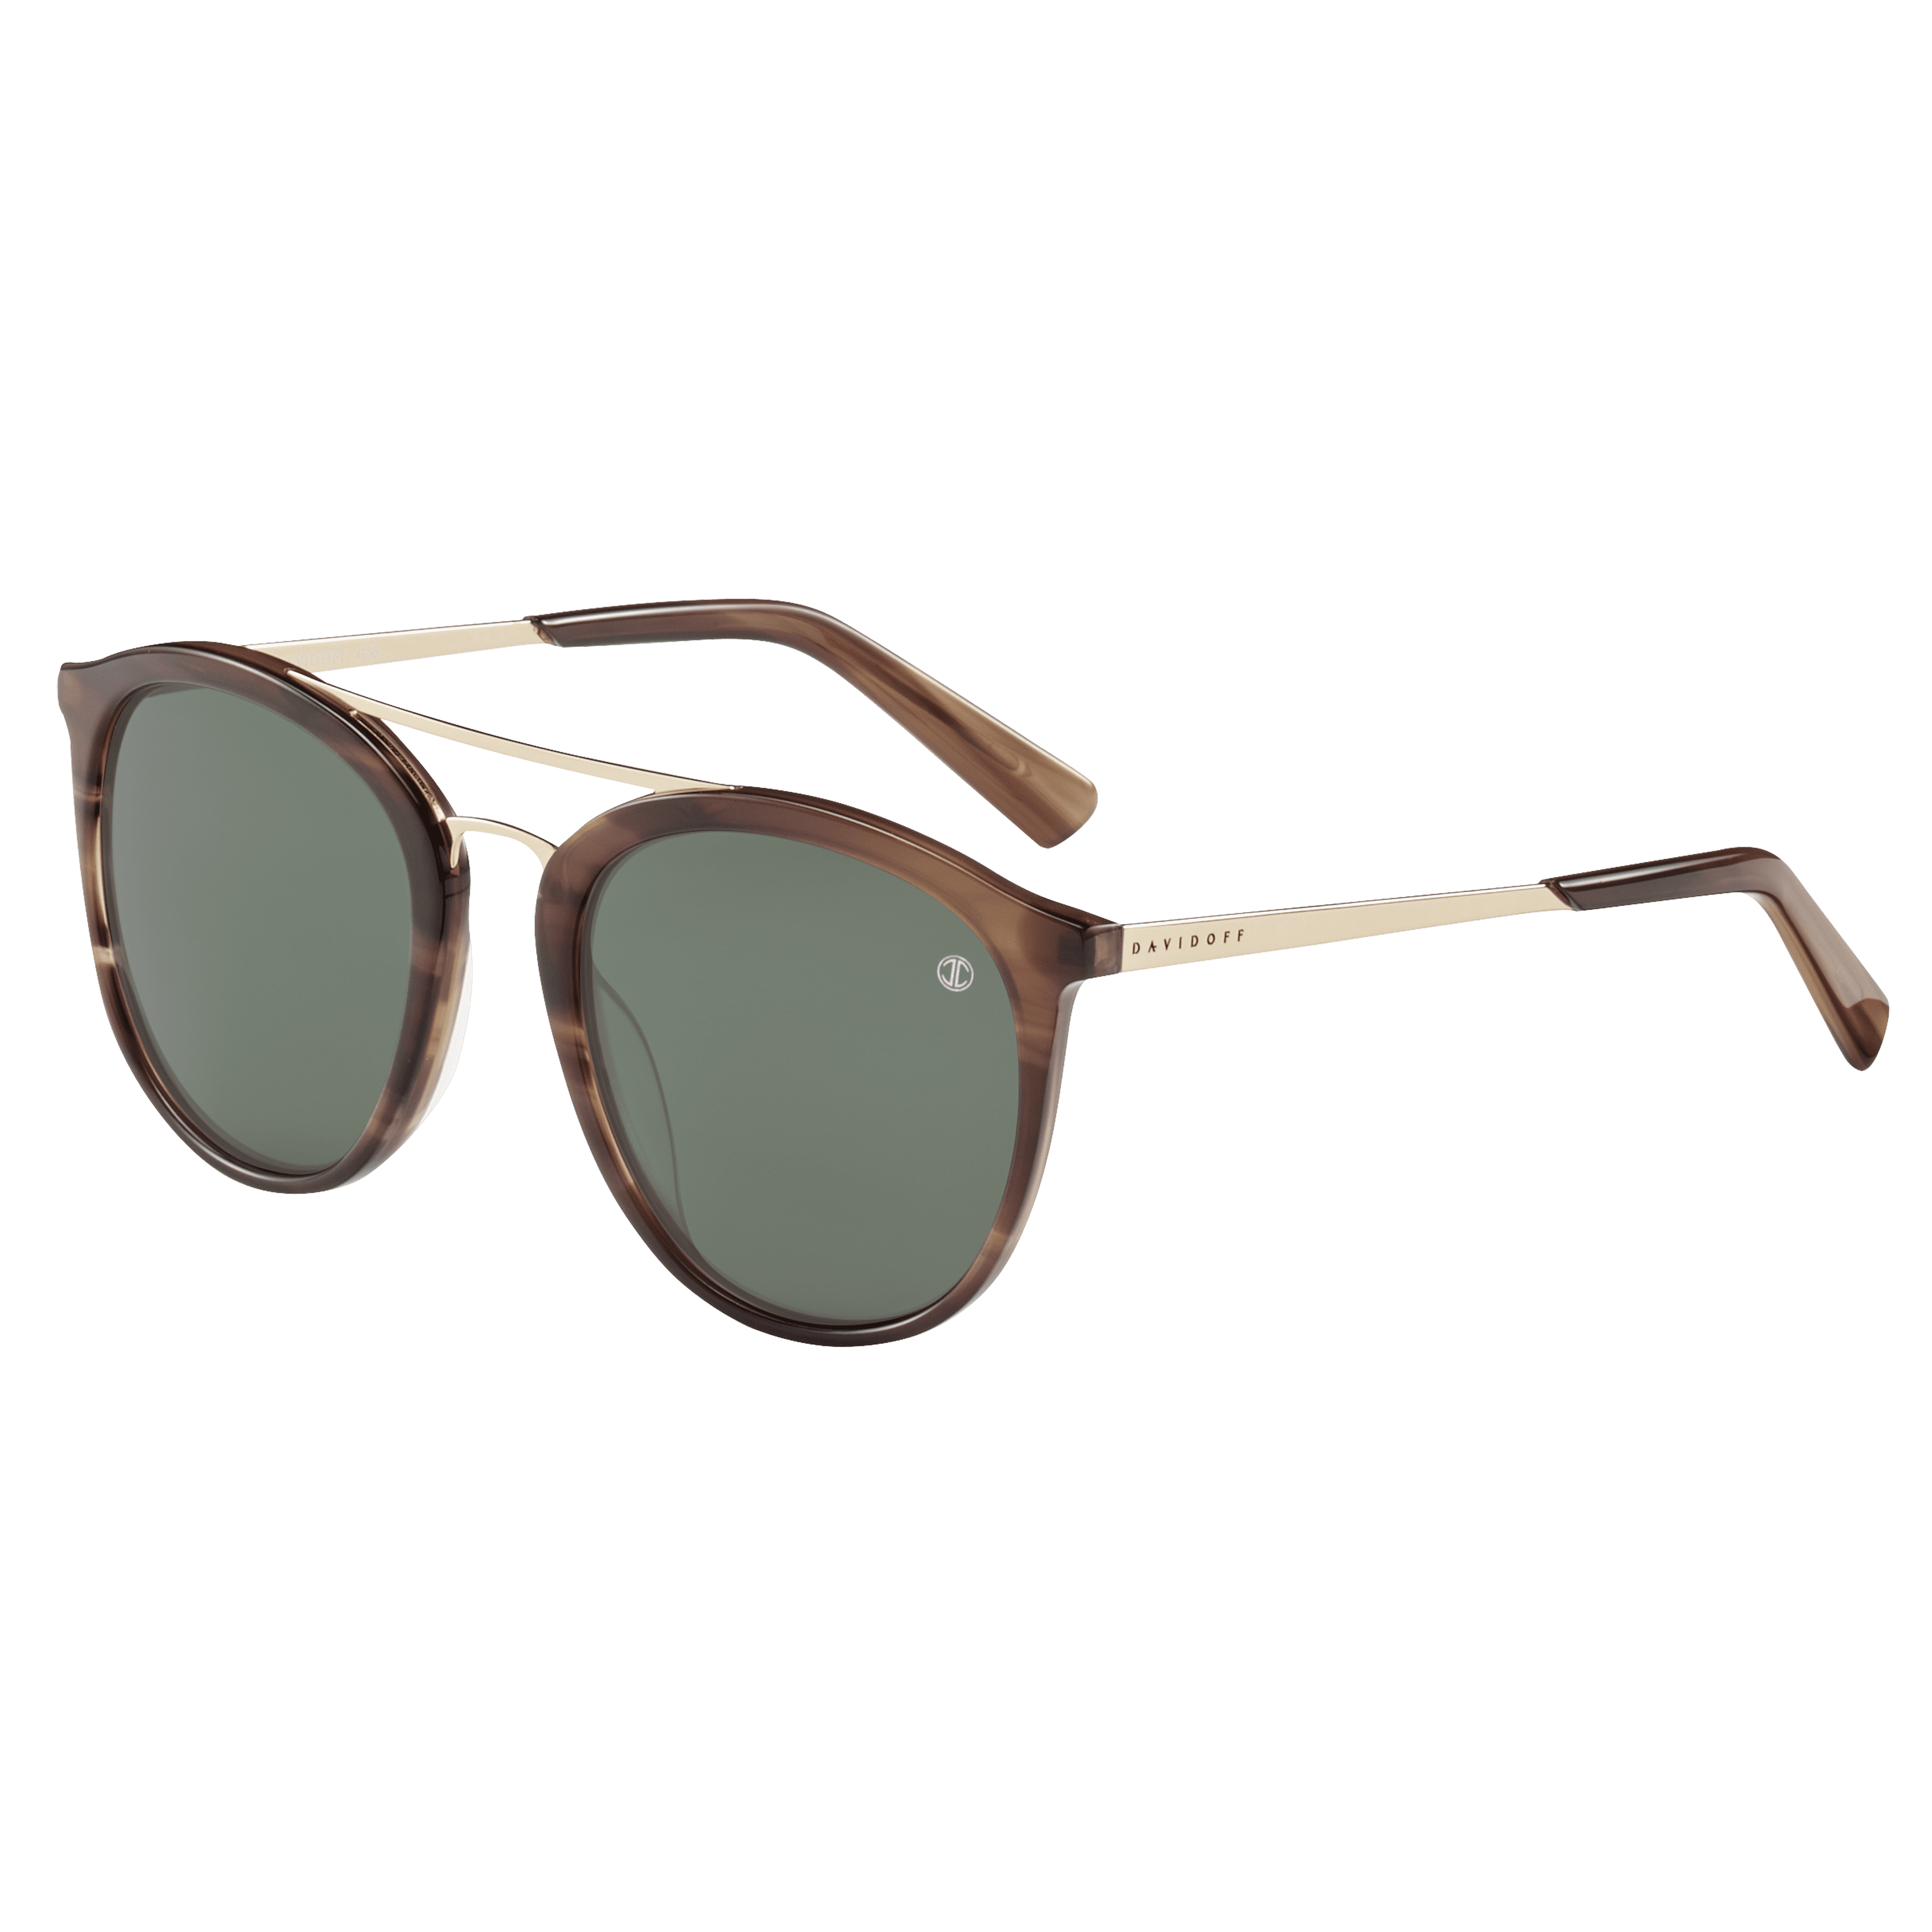 Style All–Rounder – Sunglasses Mod. 97209 color ref. 6397